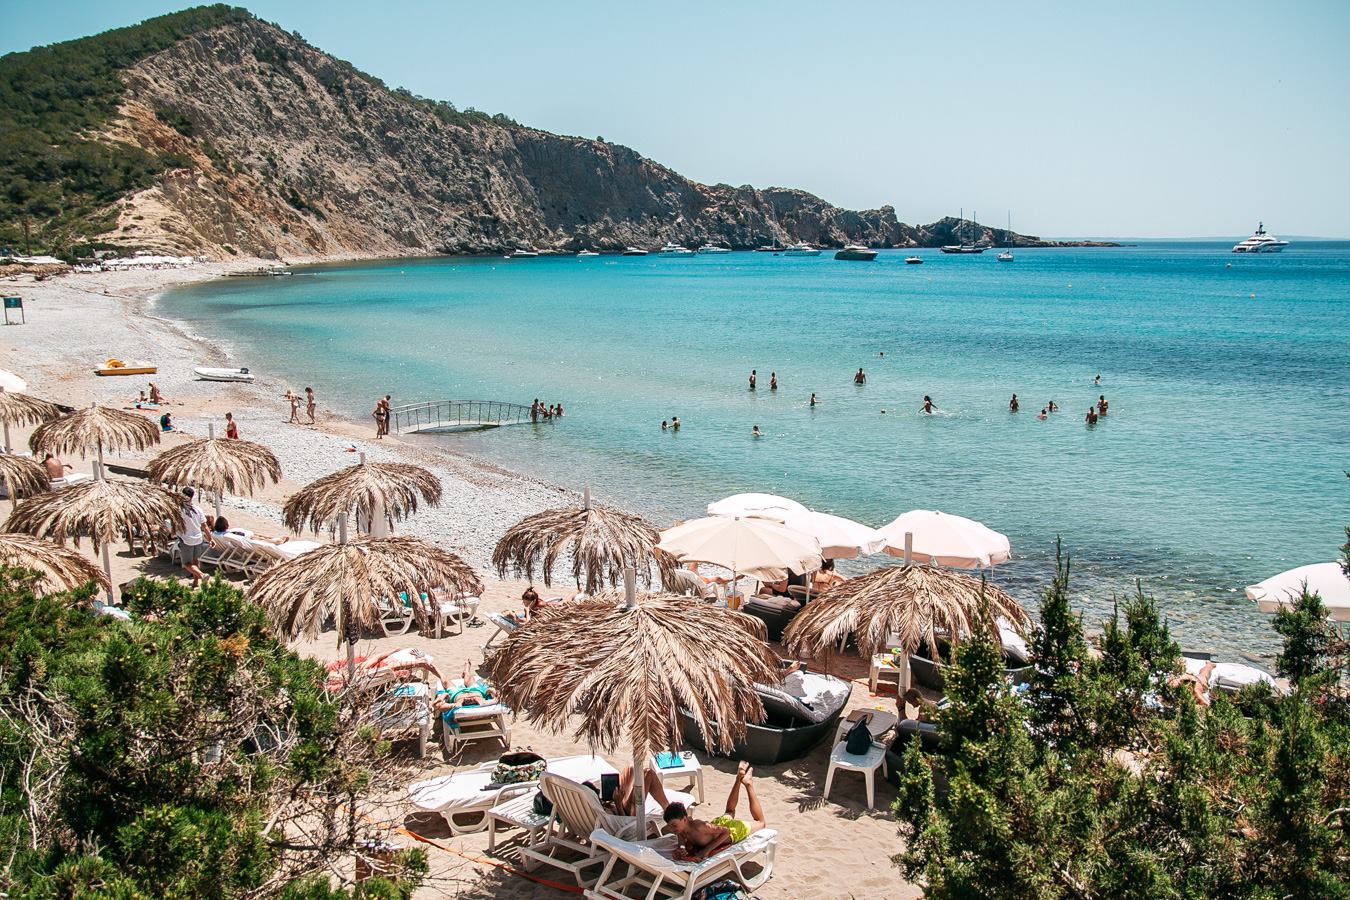 The most famous beach clubs & sunset bars in Ibiza – Part 2